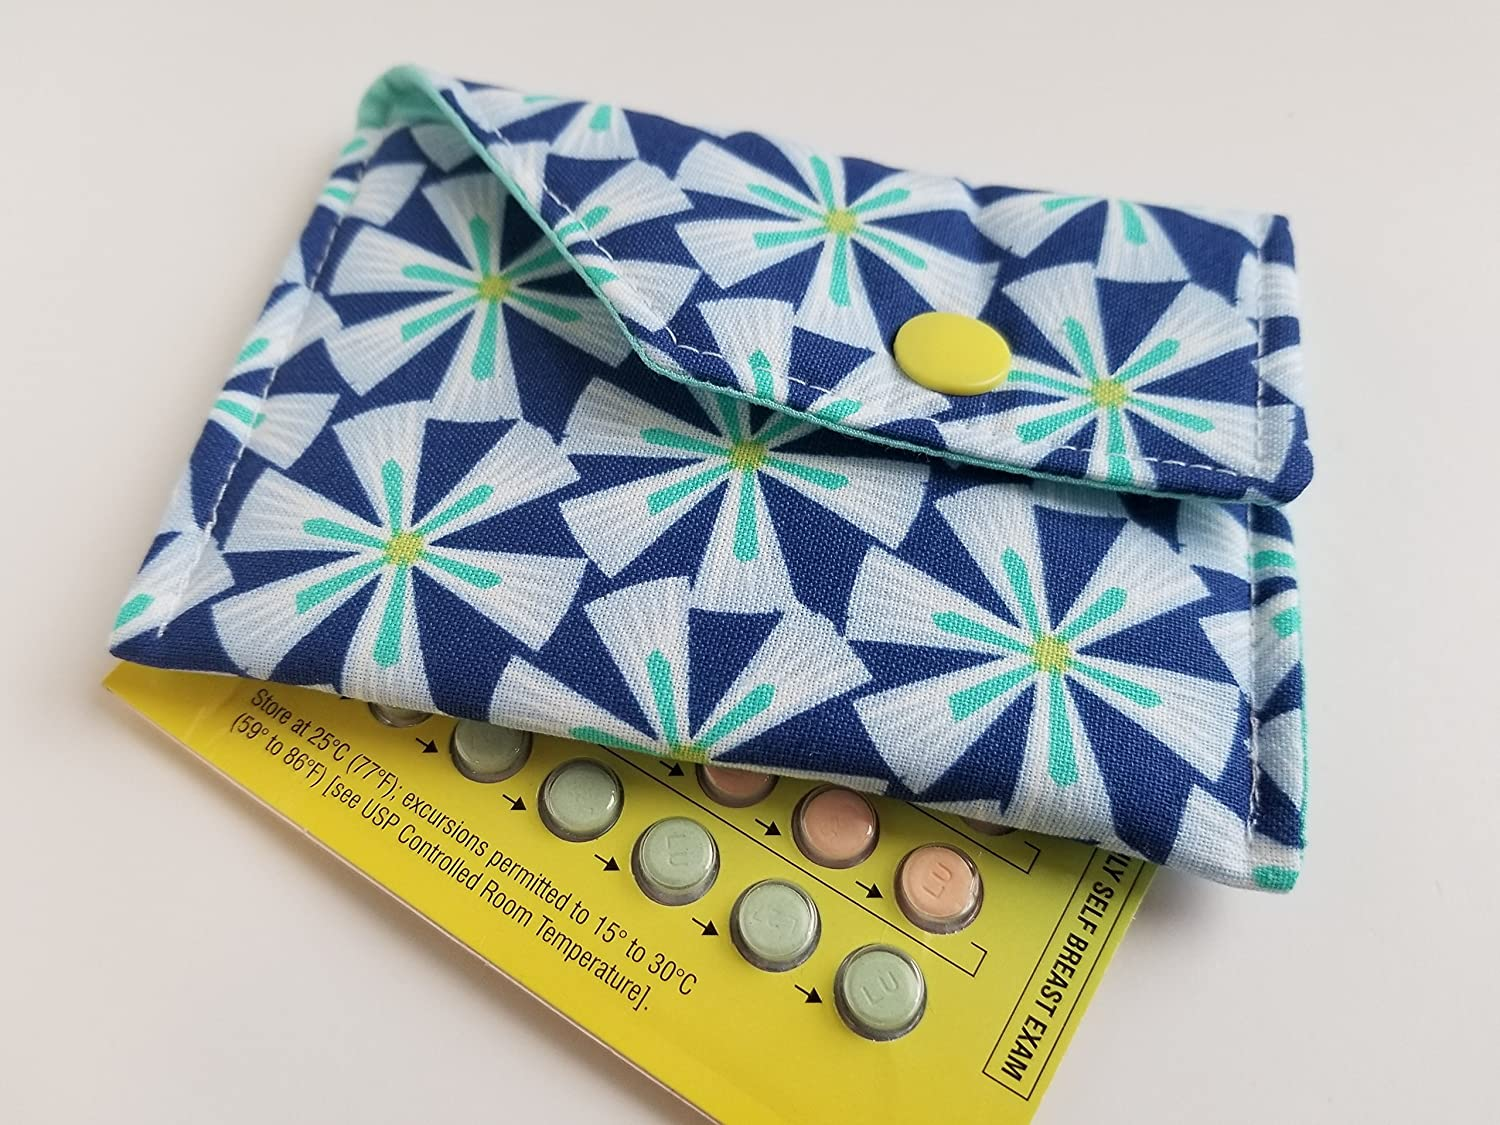 Birth Control Case Sleeve with Snap Closure -Graphic yellow